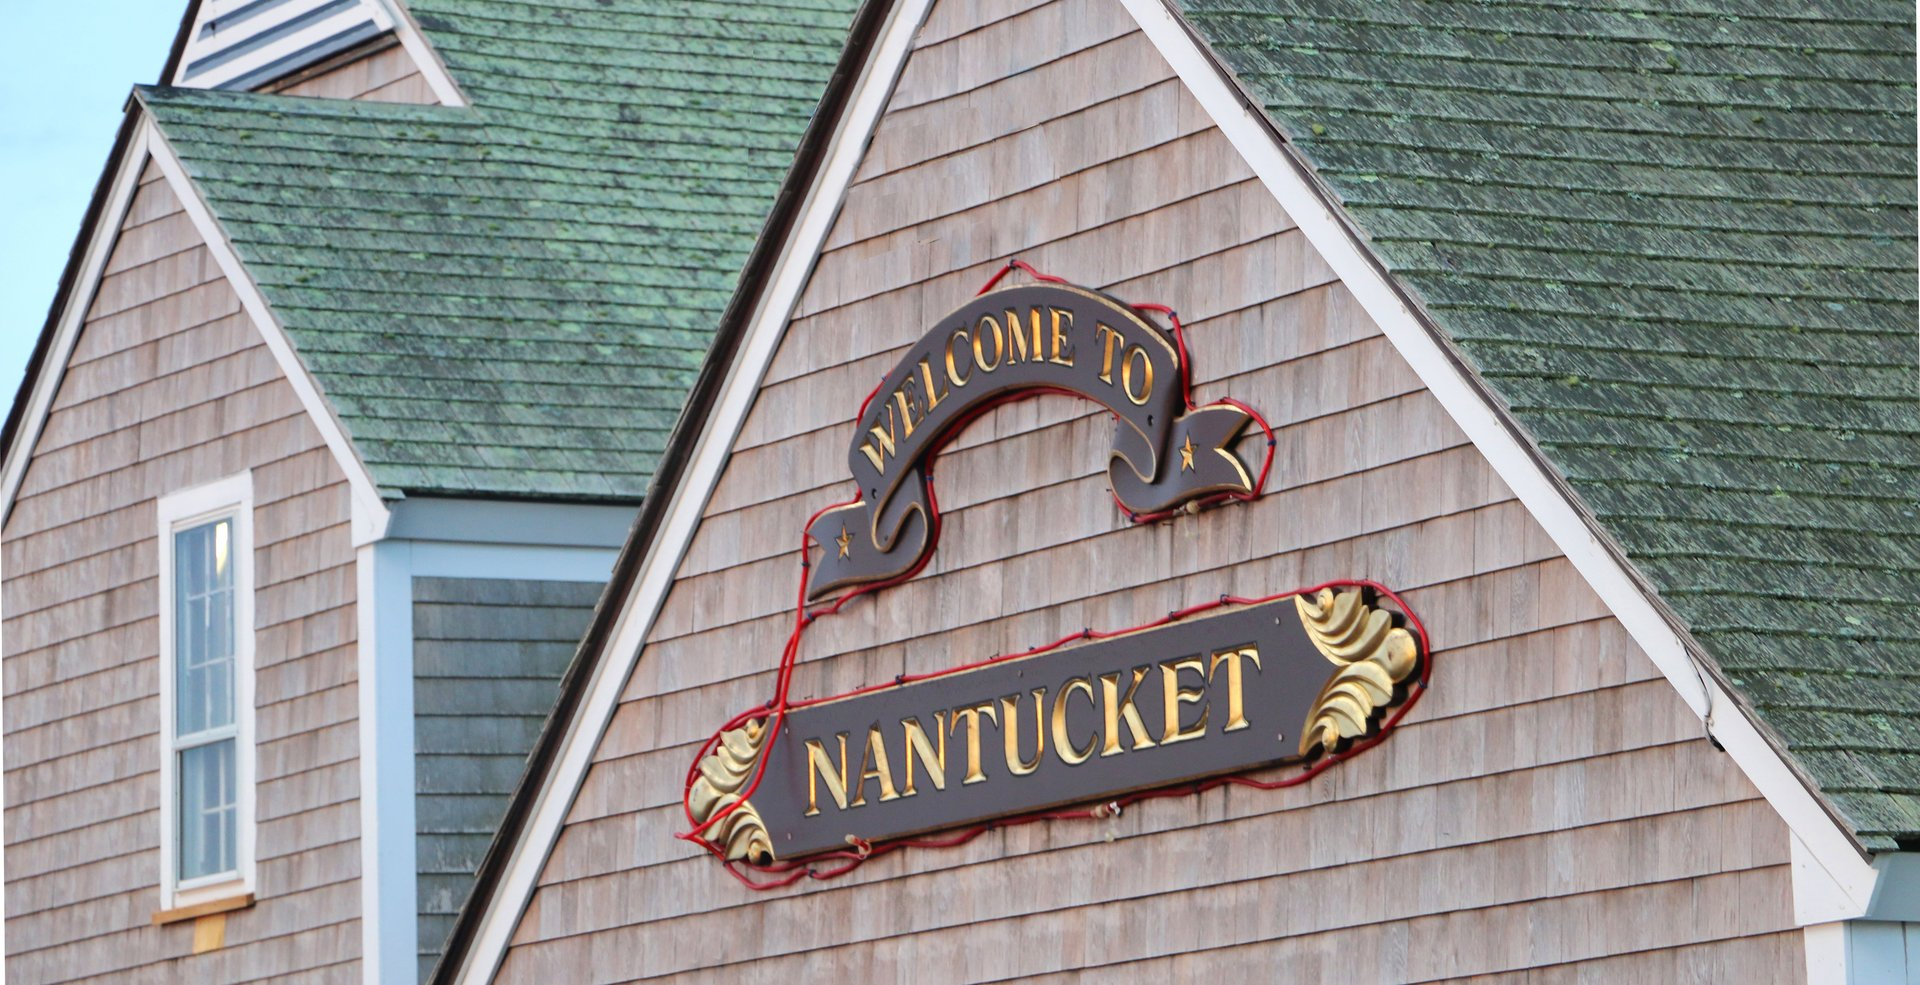 Nantucket Steamboat Wharf